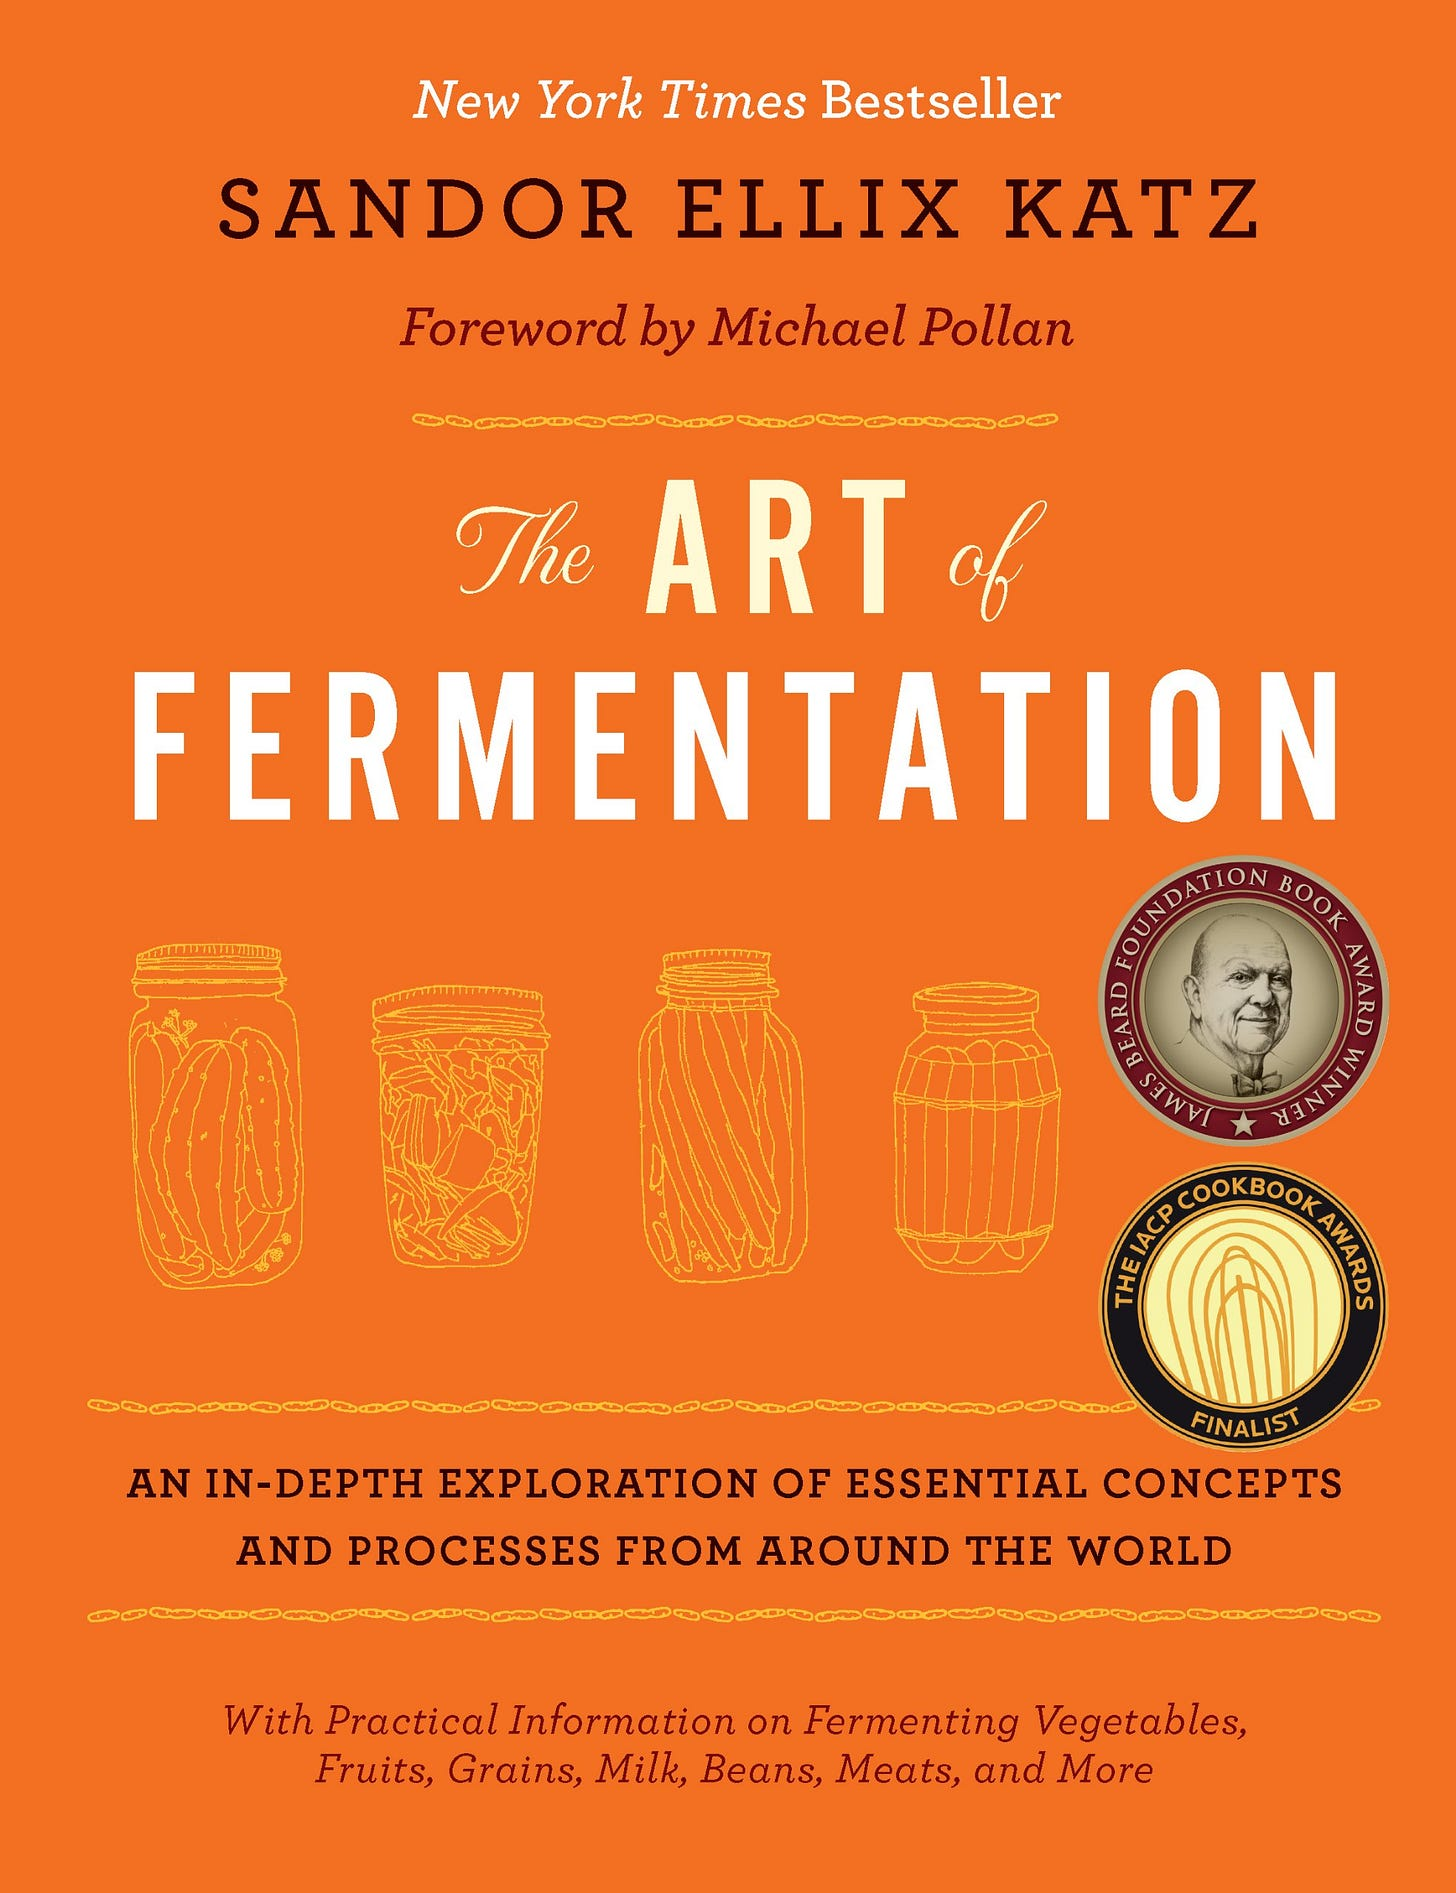 The Art of Fermentation: An In-depth Exploration of Essential Concepts and  Processes from Around the World: Amazon.co.uk: Sandor Ellix Katz: Books